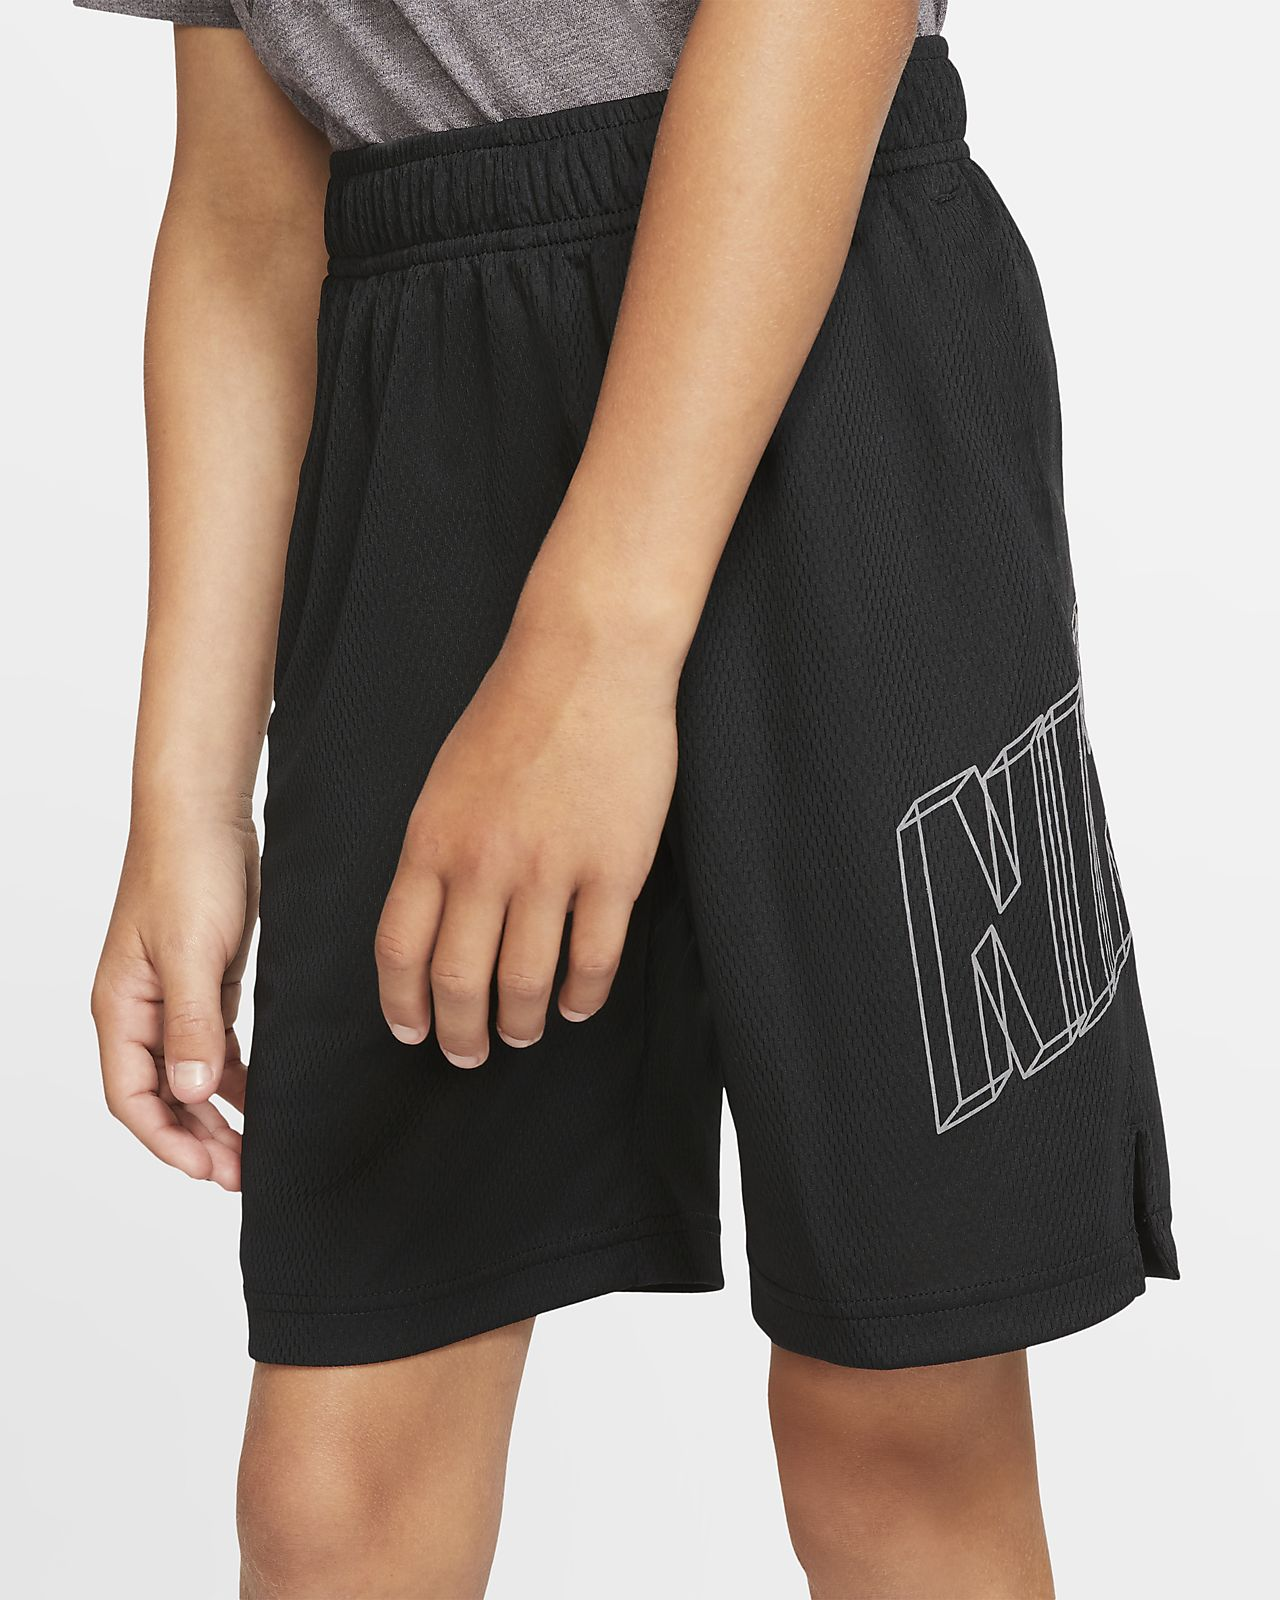 Nike Dri-FIT Jungen-Trainingsshorts mit Grafik